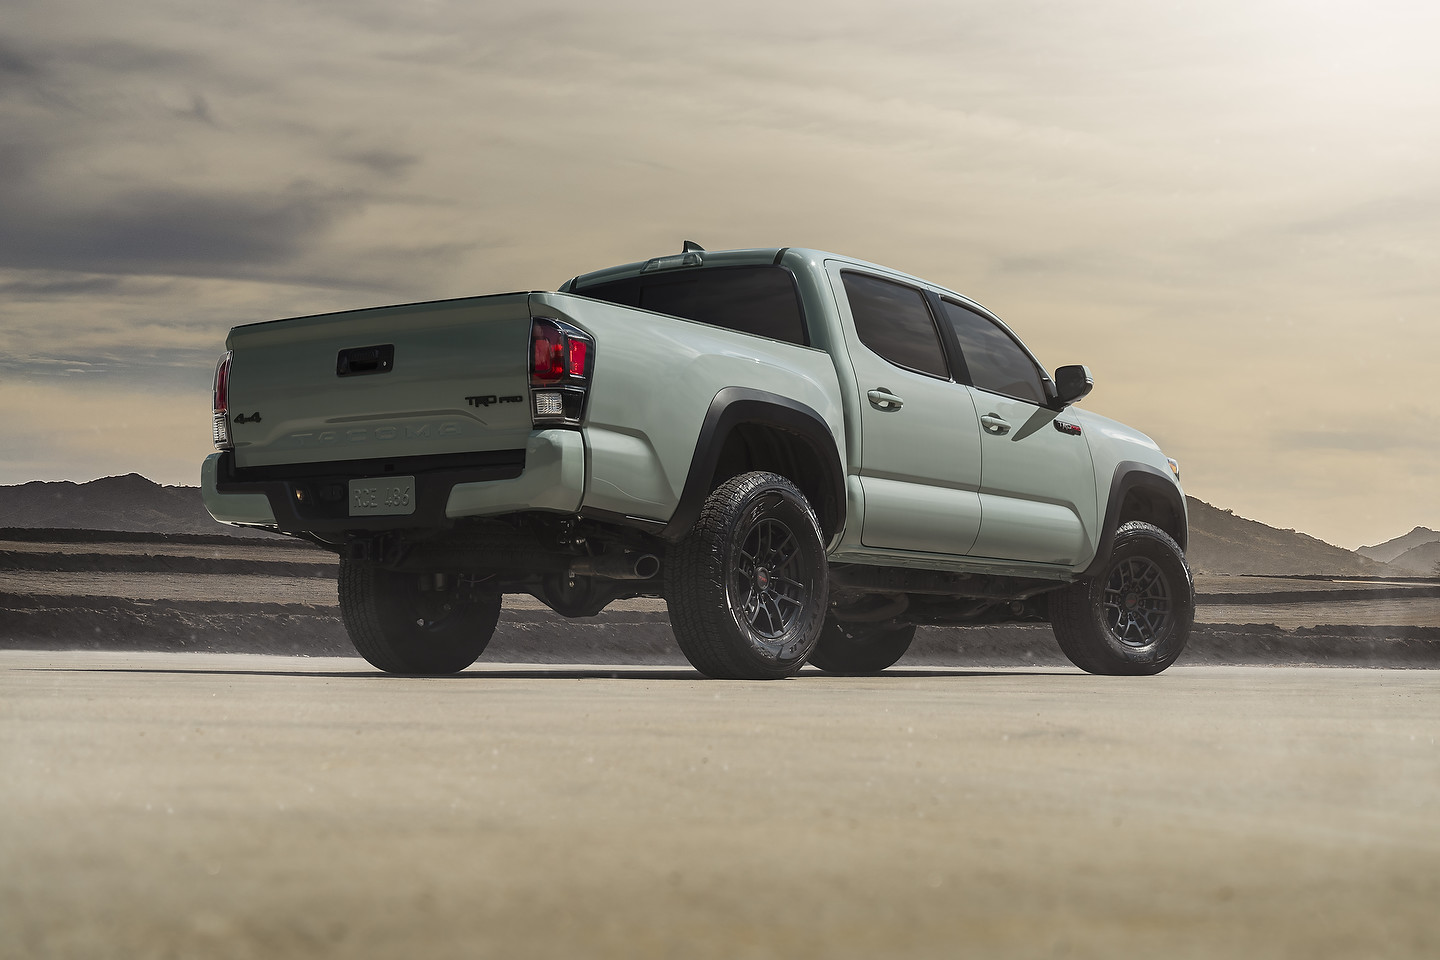 trd toyota tacoma 2021 pro lunar rock 4runner paint models cab spot takes rivals trims towing mpg capacity double features